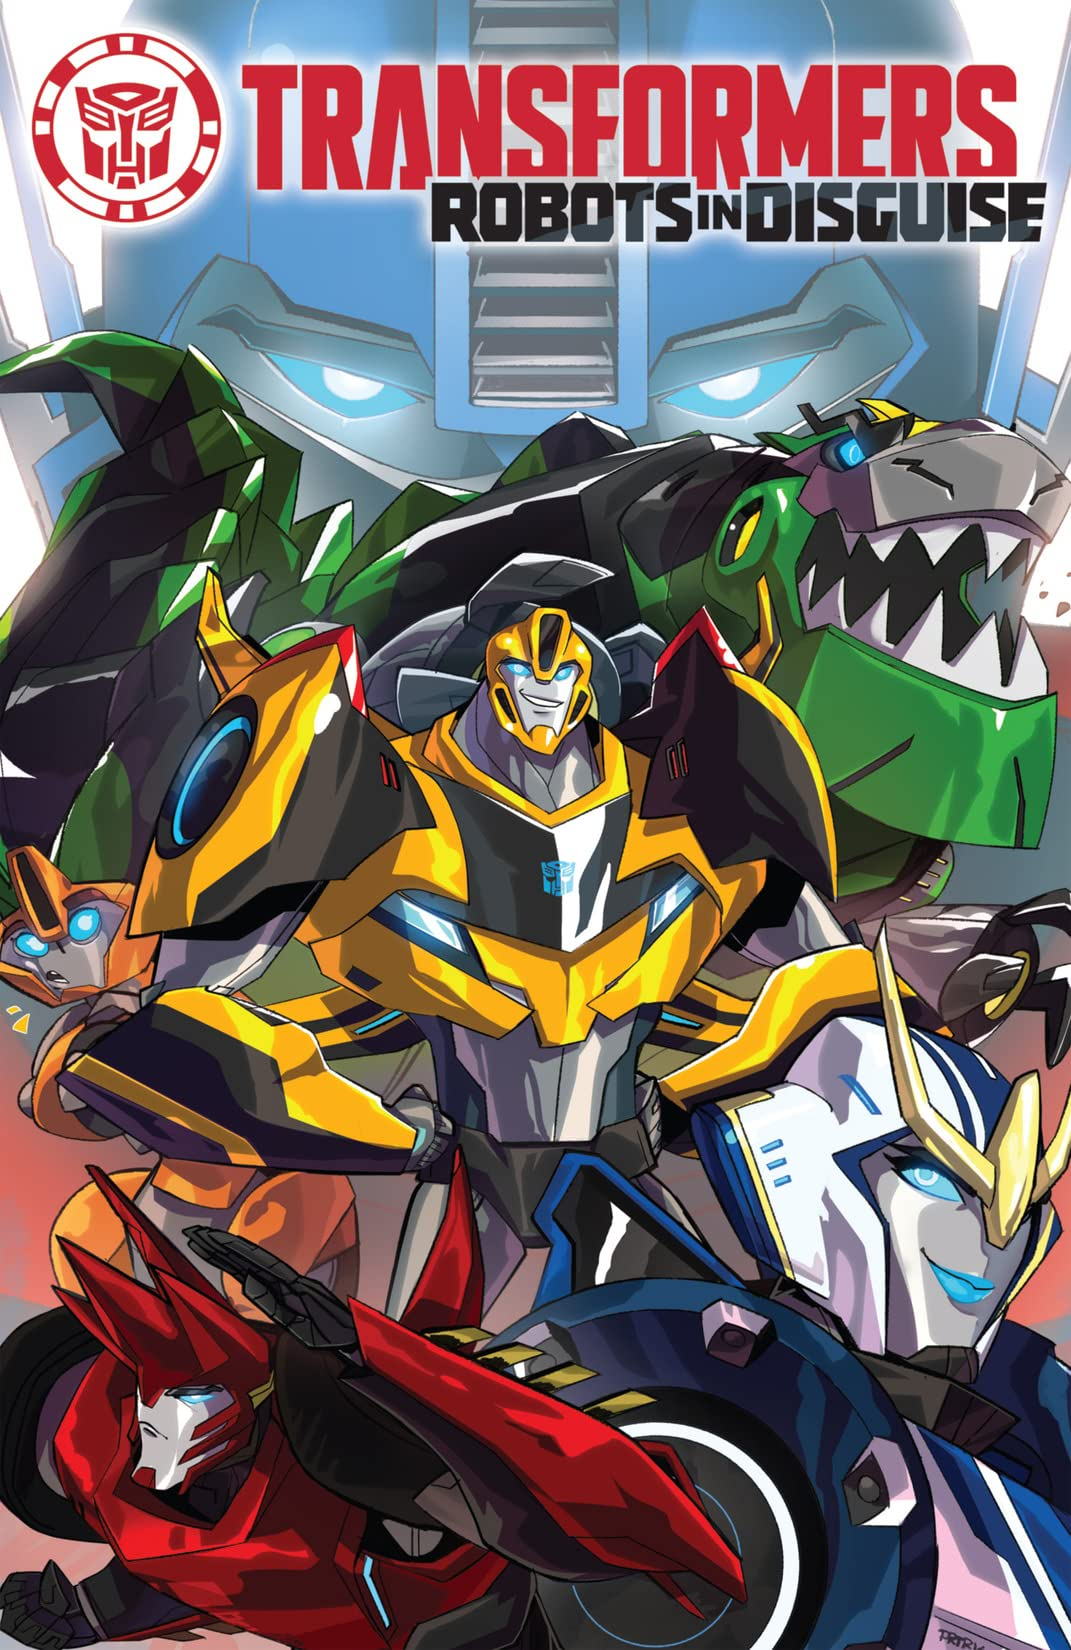 Transformers: Robots In Disguise Animated